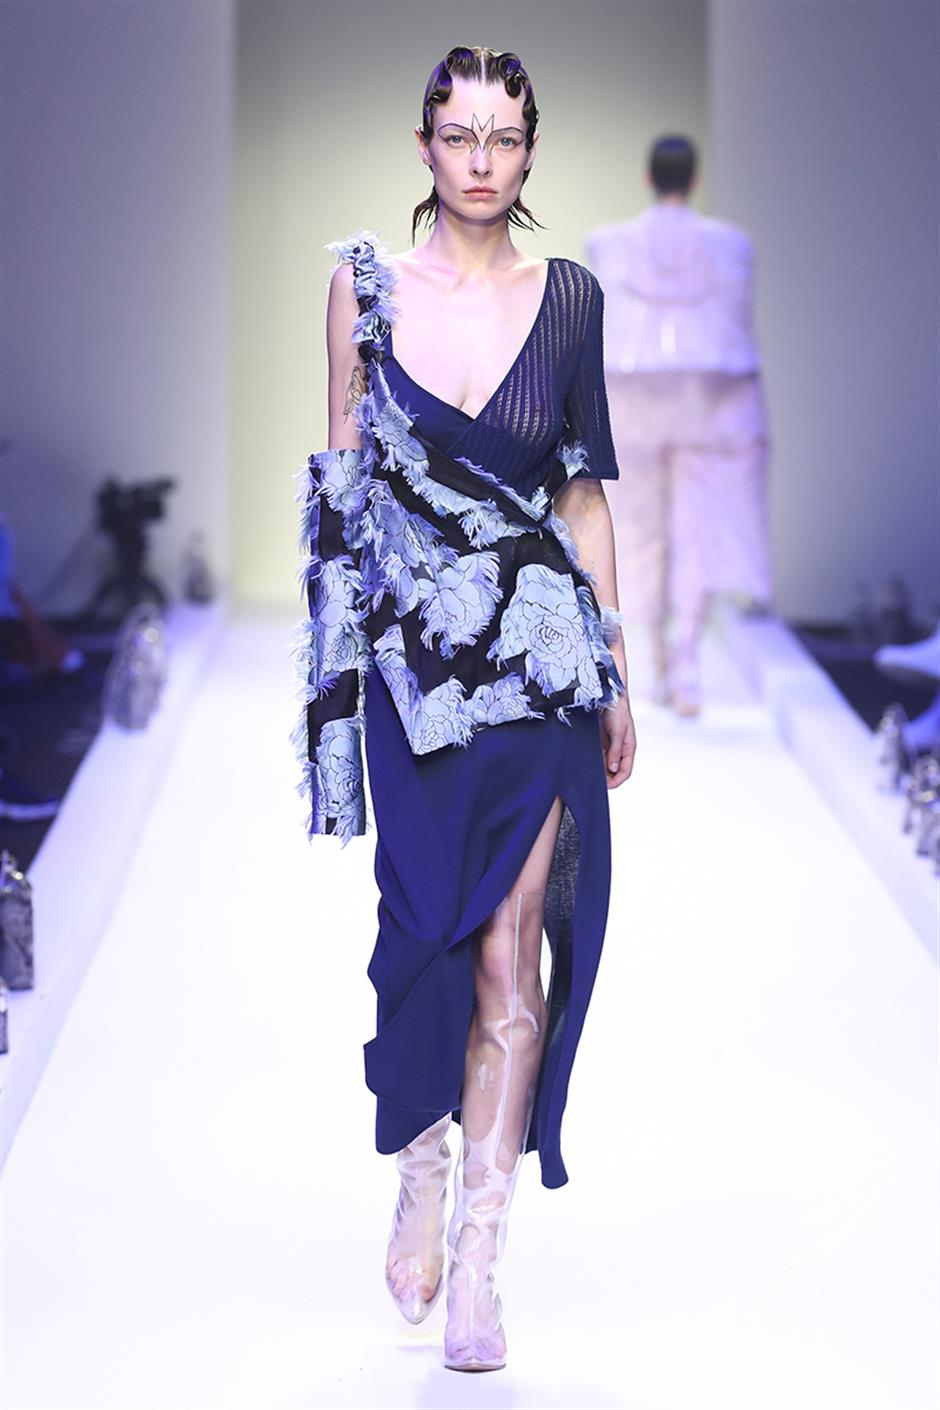 Trend-setters get personal at fashion week